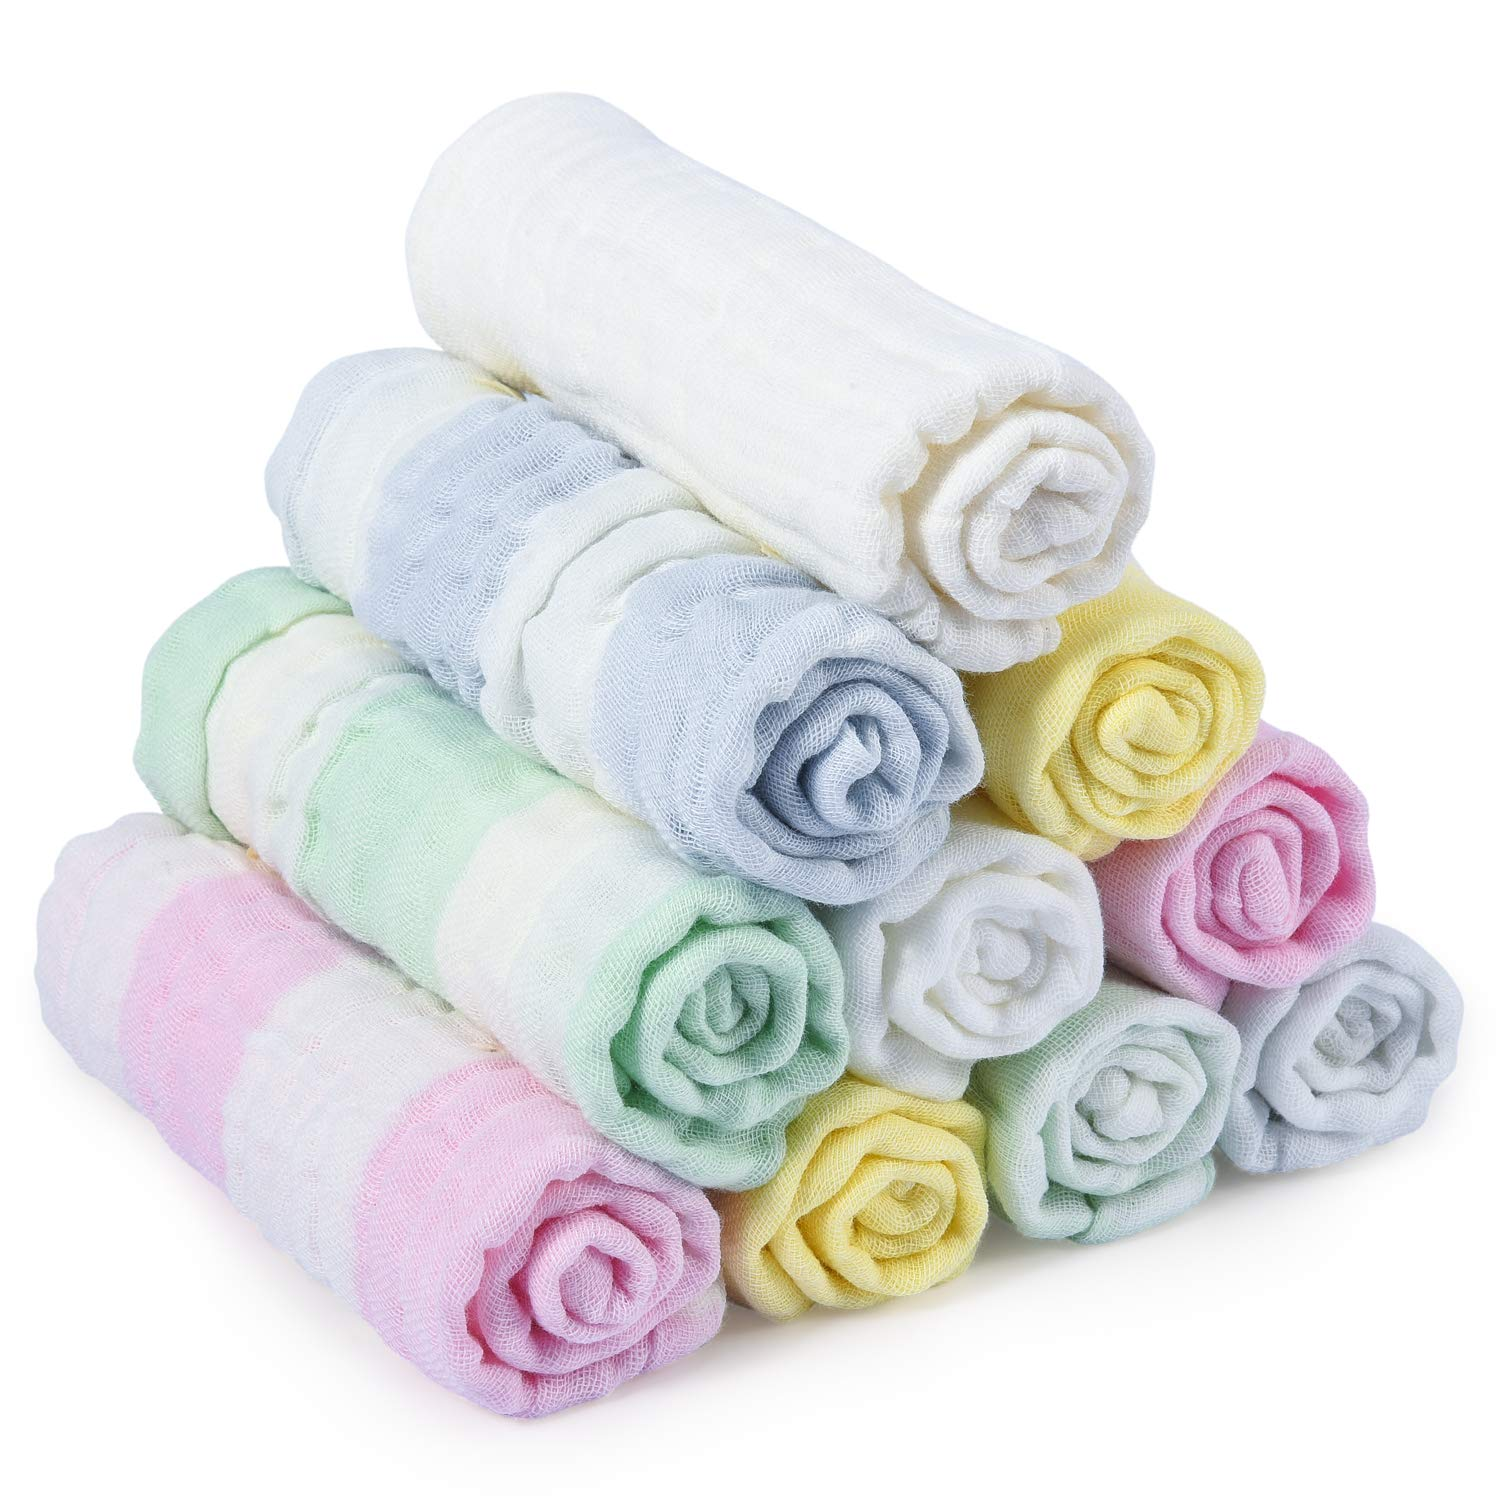 Baby Muslin Washcloths, Momcozy Baby Washcloths 12'' x 12'' 100% Muslin Cotton Soft Baby Towels Set Reusable Muslin Cotton Baby Wipes for Bath, Bibs and Hands, Unisex, Rainbow Color 10 Pack